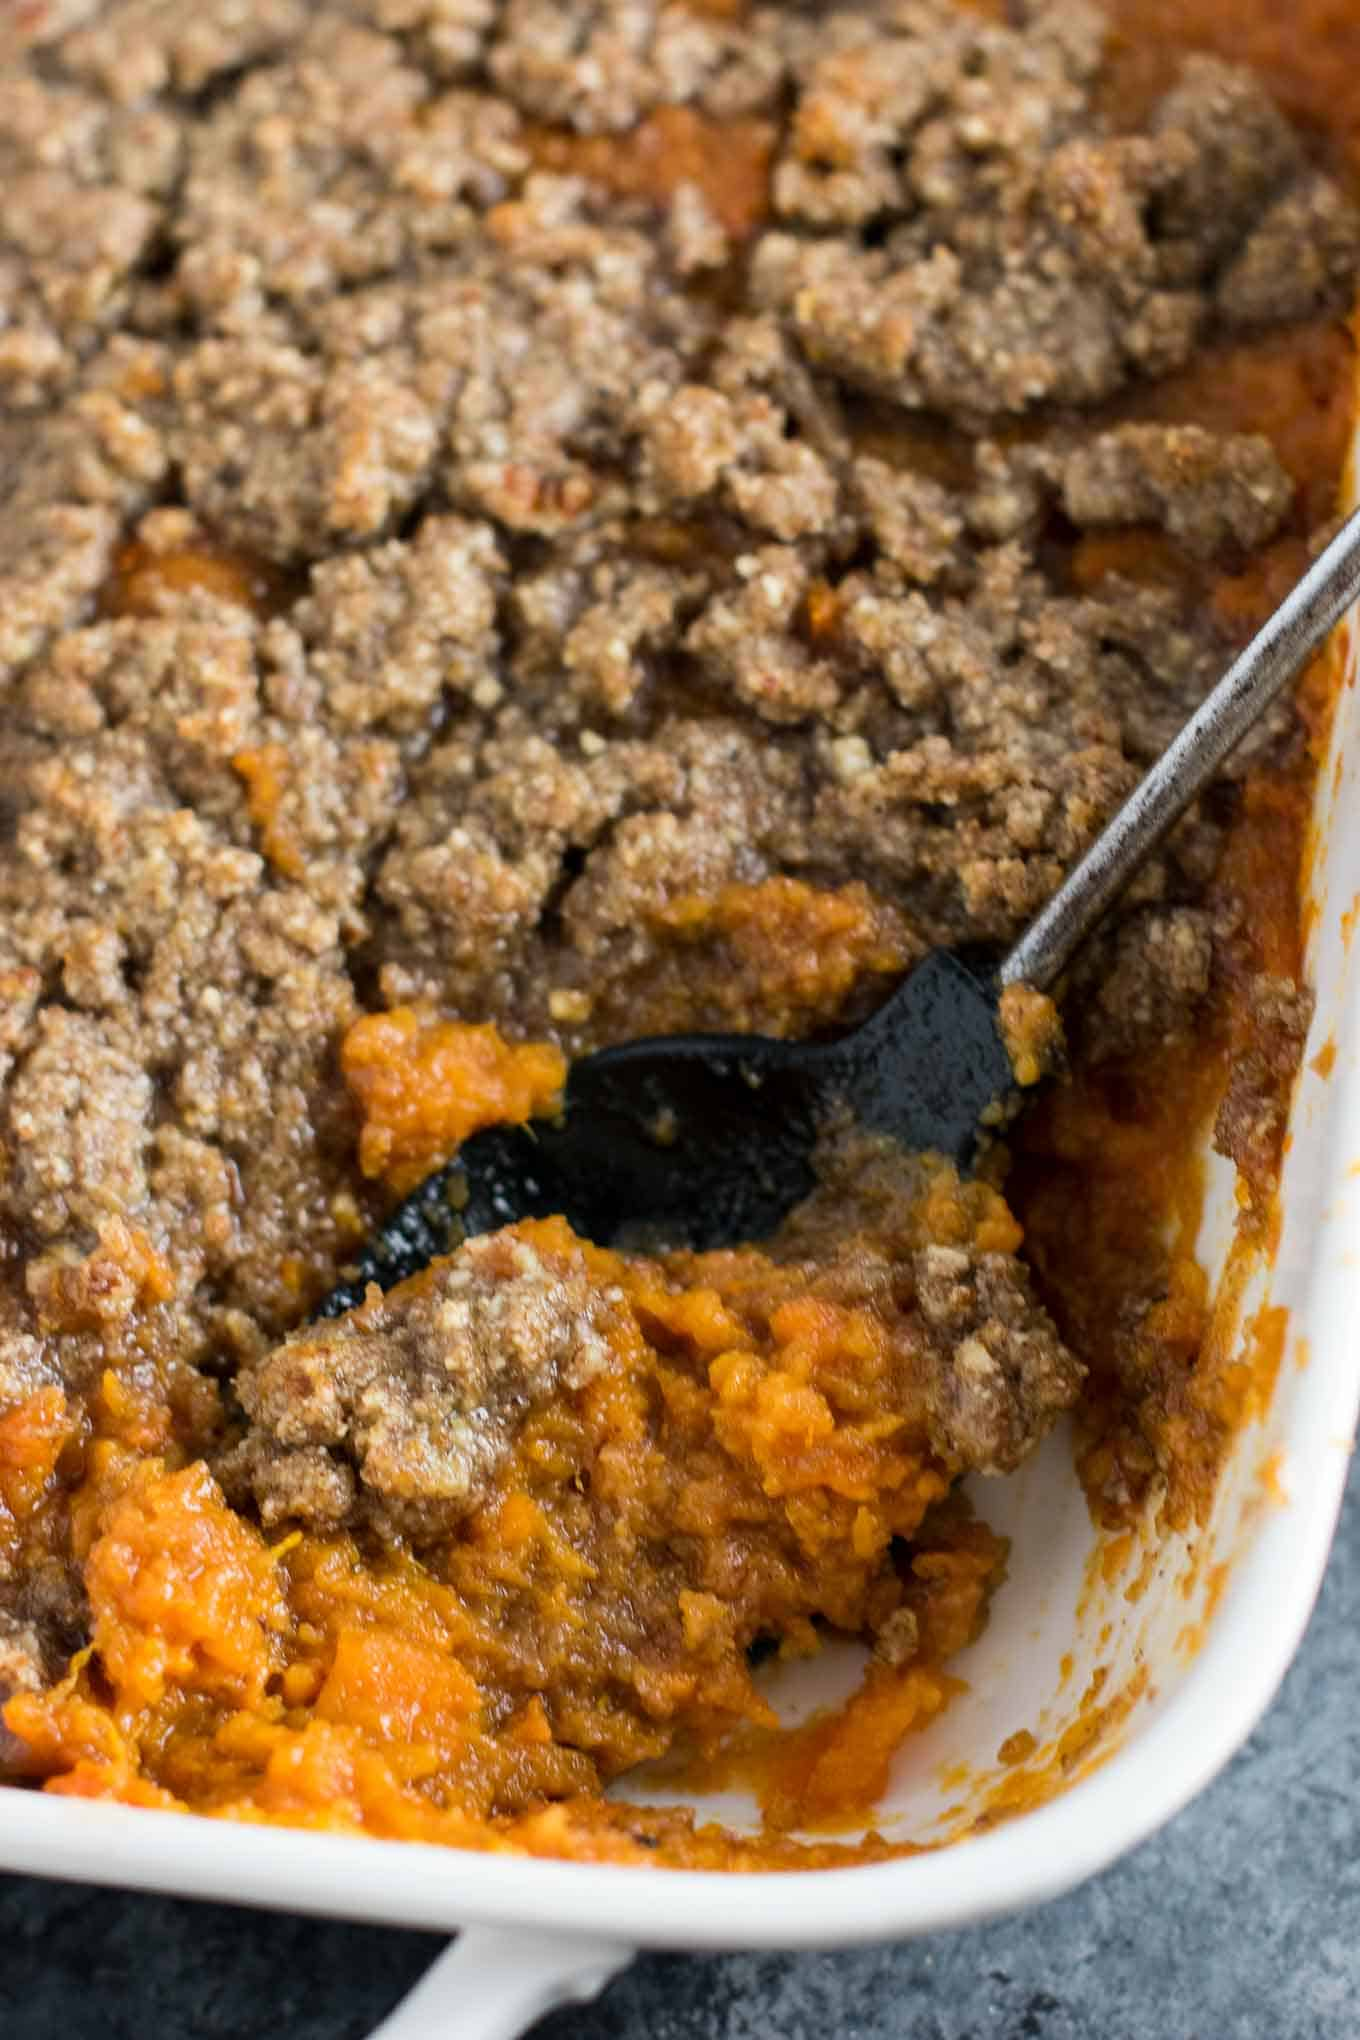 This sweet potato casserole with pecan crumble is the BEST side for your Thanksgiving table! Melt in your mouth buttery sweet potatoes are topped with a salty sweet gluten free pecan crumble. You will be fighting for seconds! #thanksgiving #sweetpotatocasserole #vegetarian #glutenfree